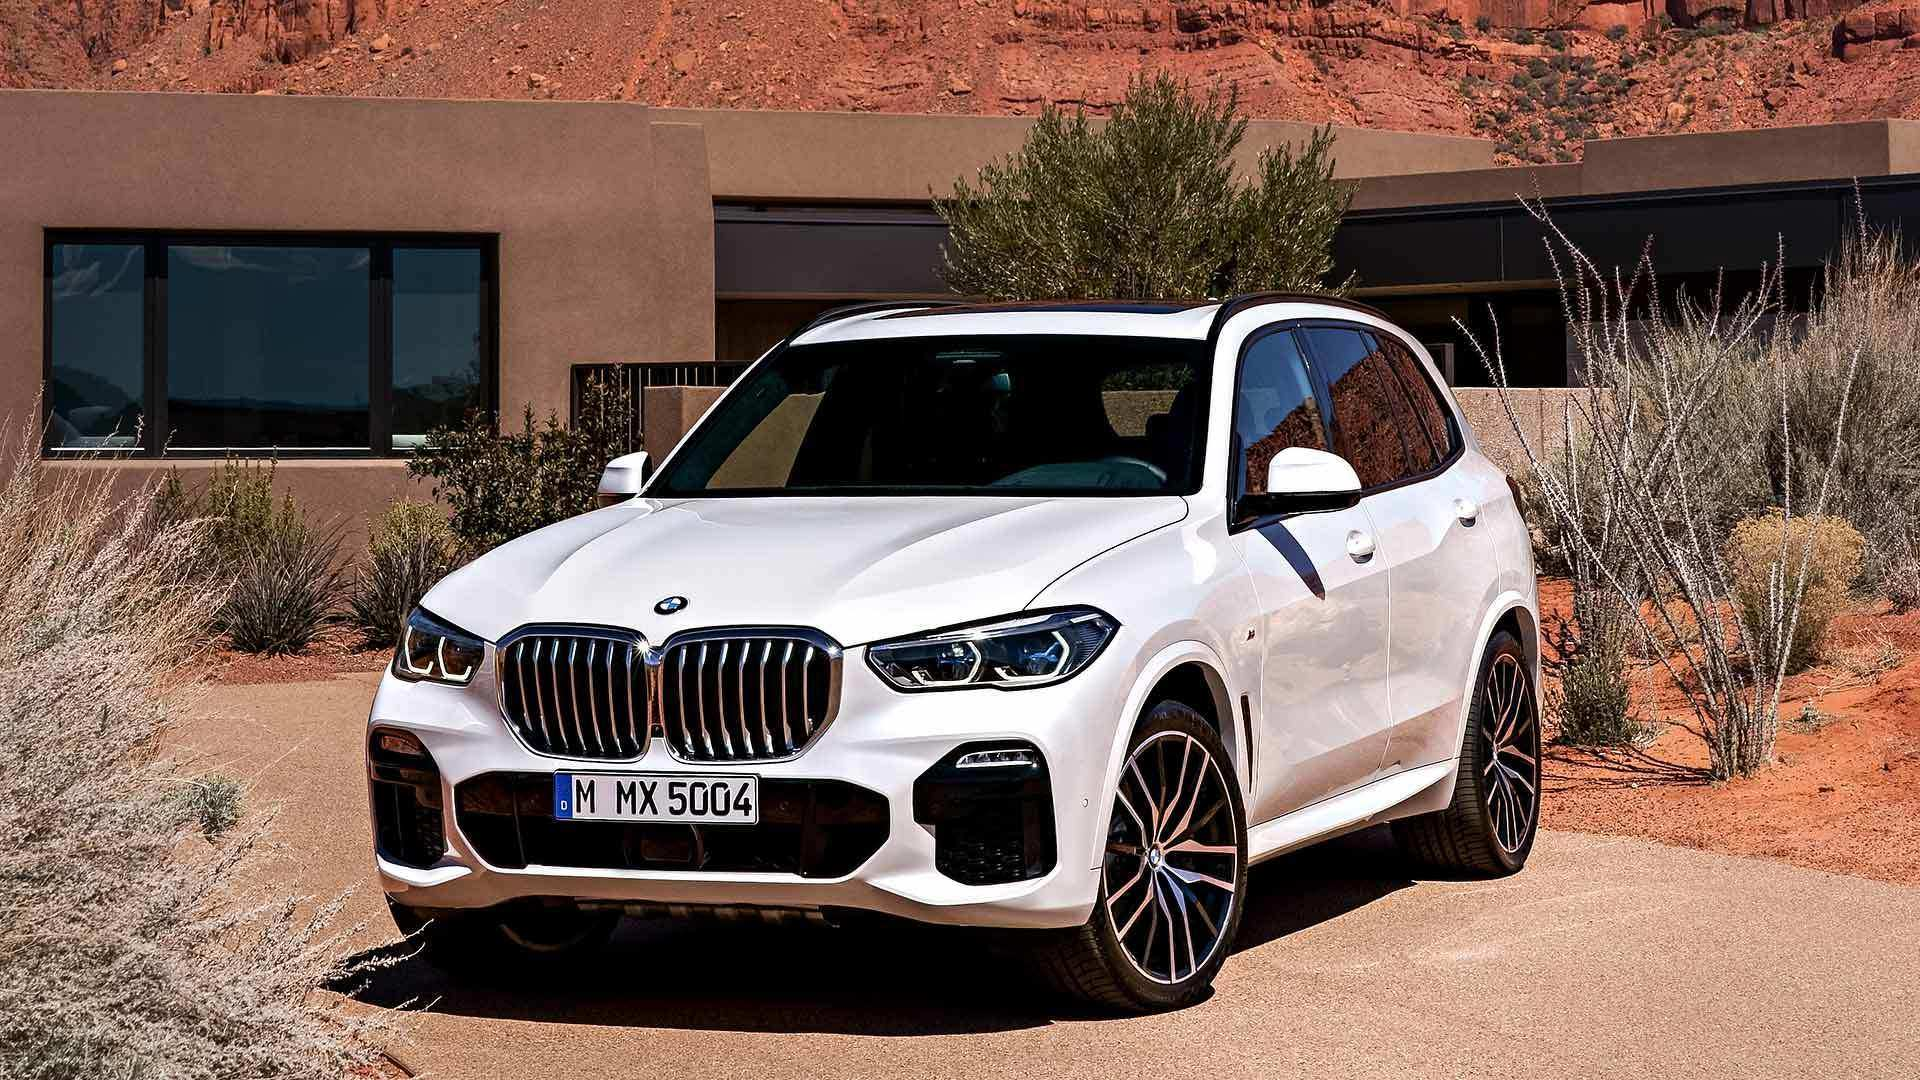 49 Gallery of The 2019 Bmw X5 Configurator Usa Redesign And Concept Exterior and Interior for The 2019 Bmw X5 Configurator Usa Redesign And Concept